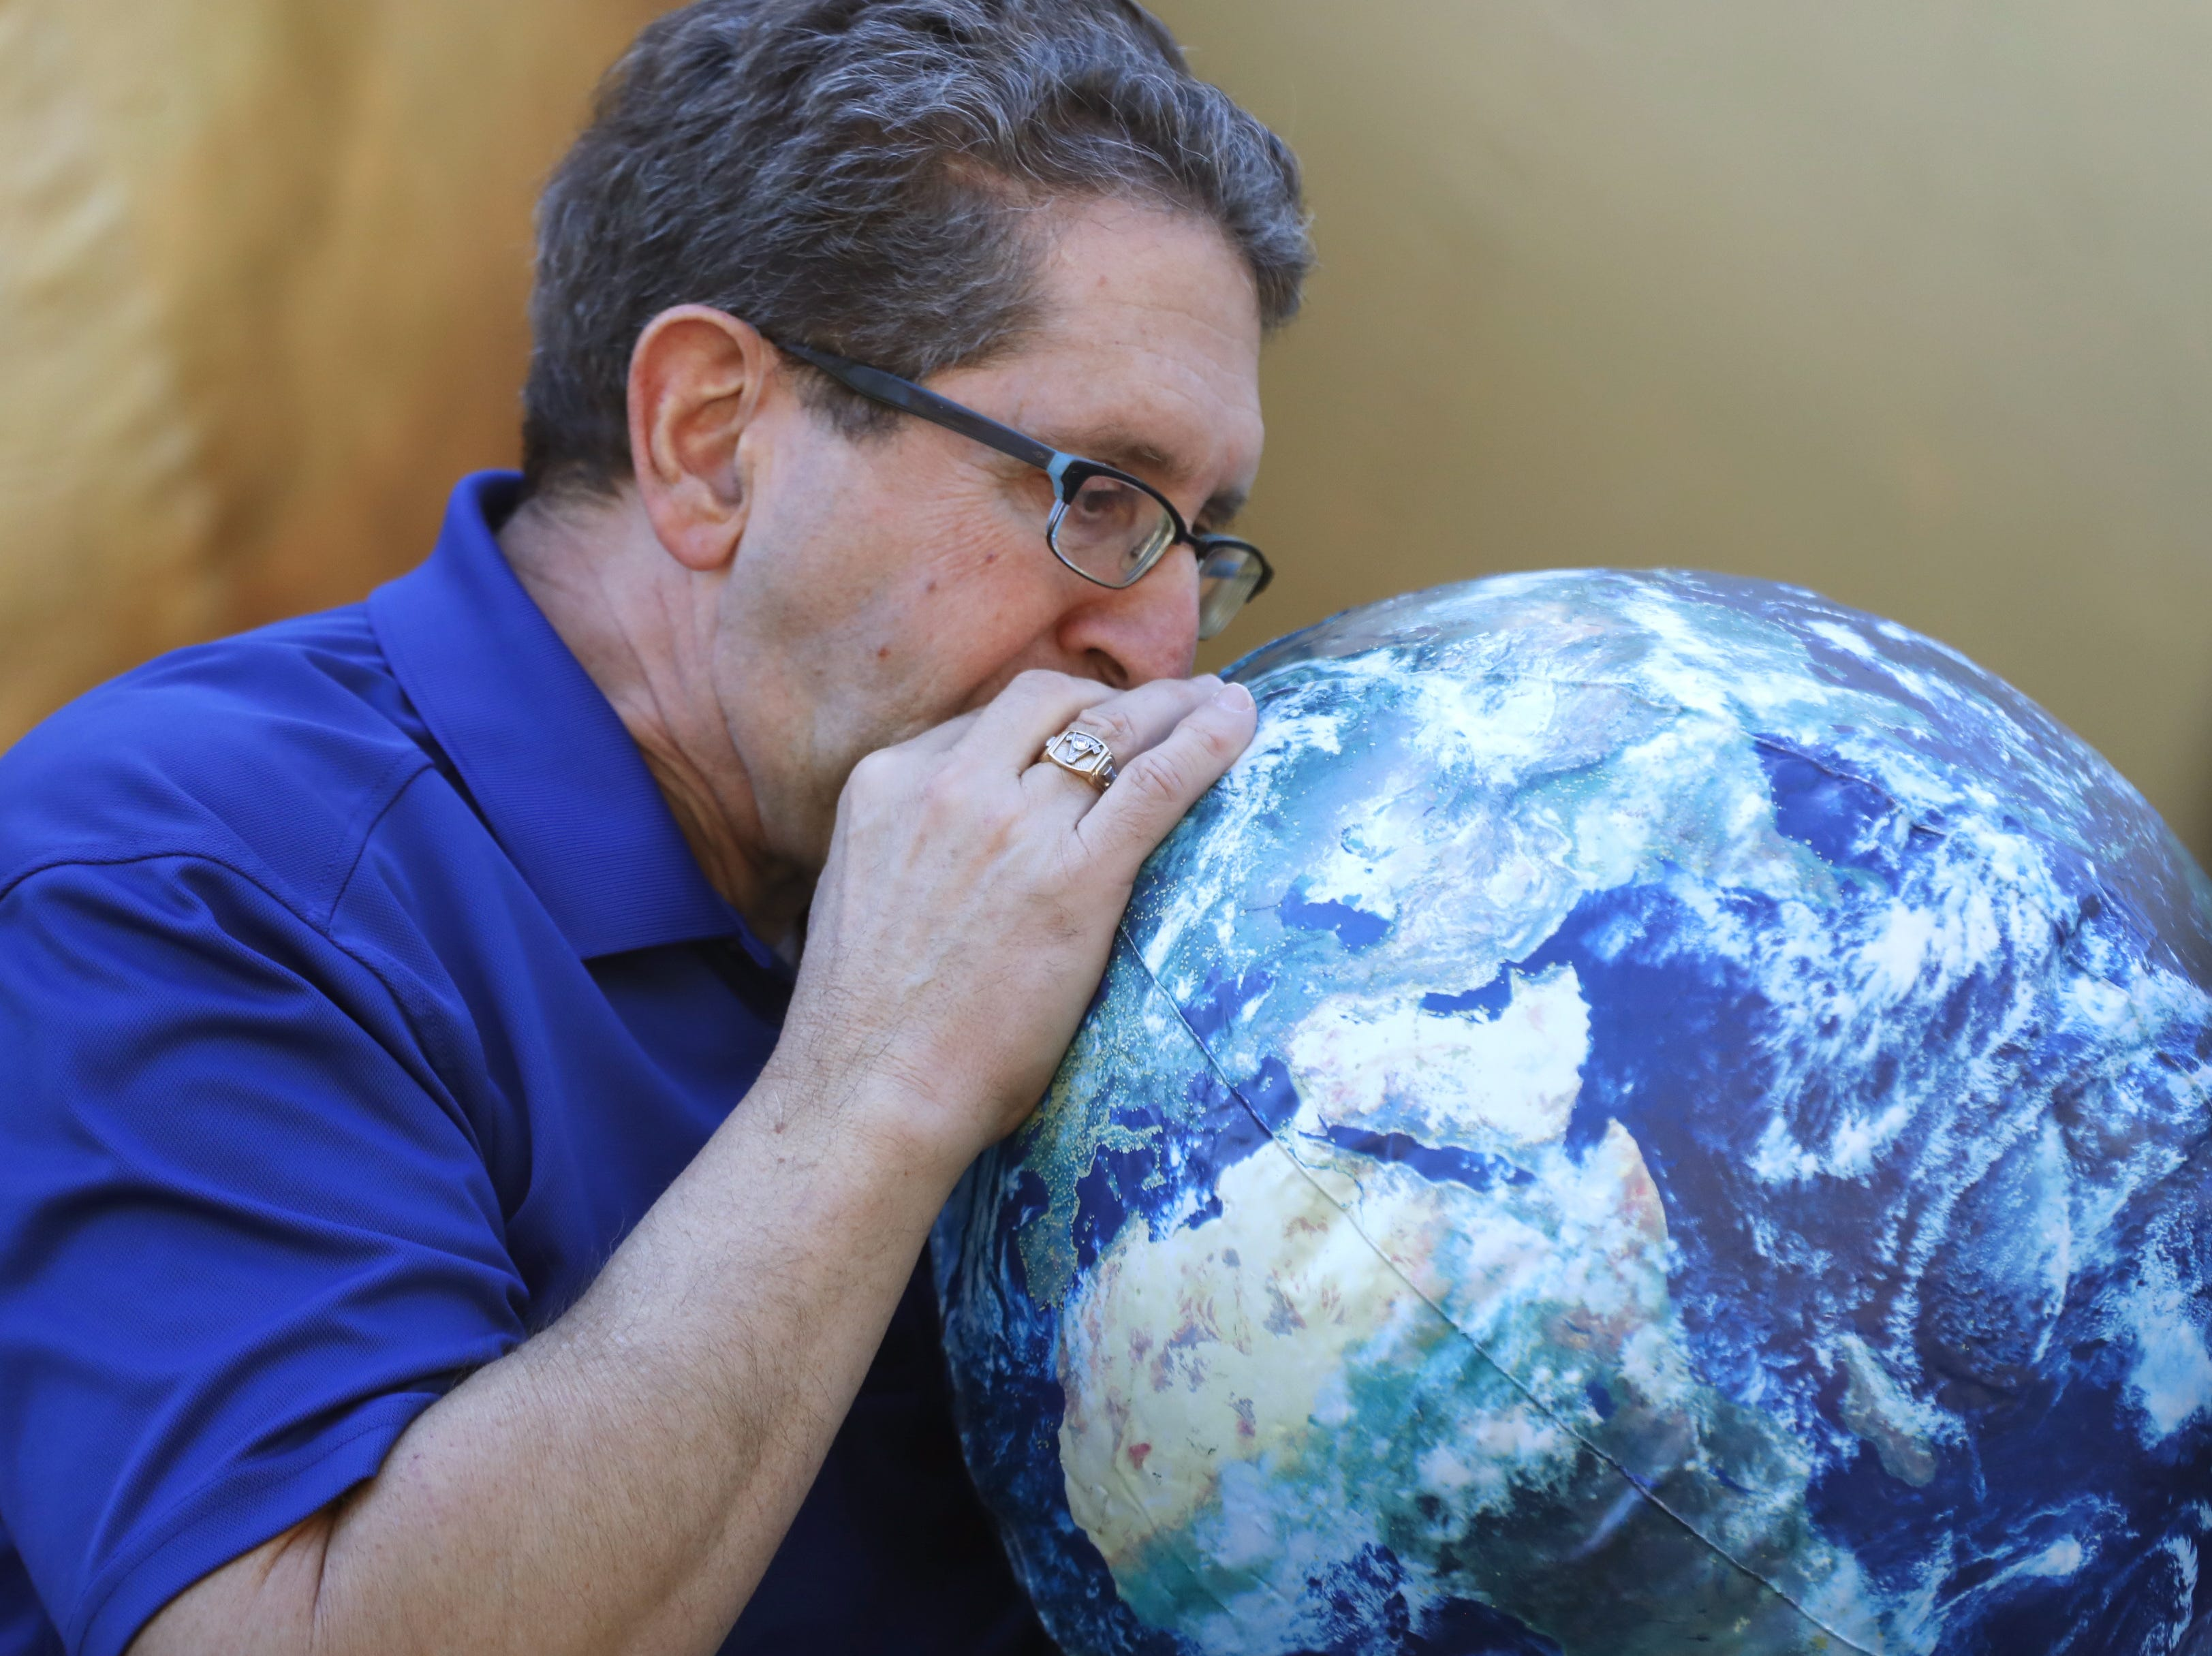 Gary Loeb, a volunteer docent, blows up a balloon Earth during a STEM outreach event in downtown Phoenix, Ariz. on January 26, 2019.